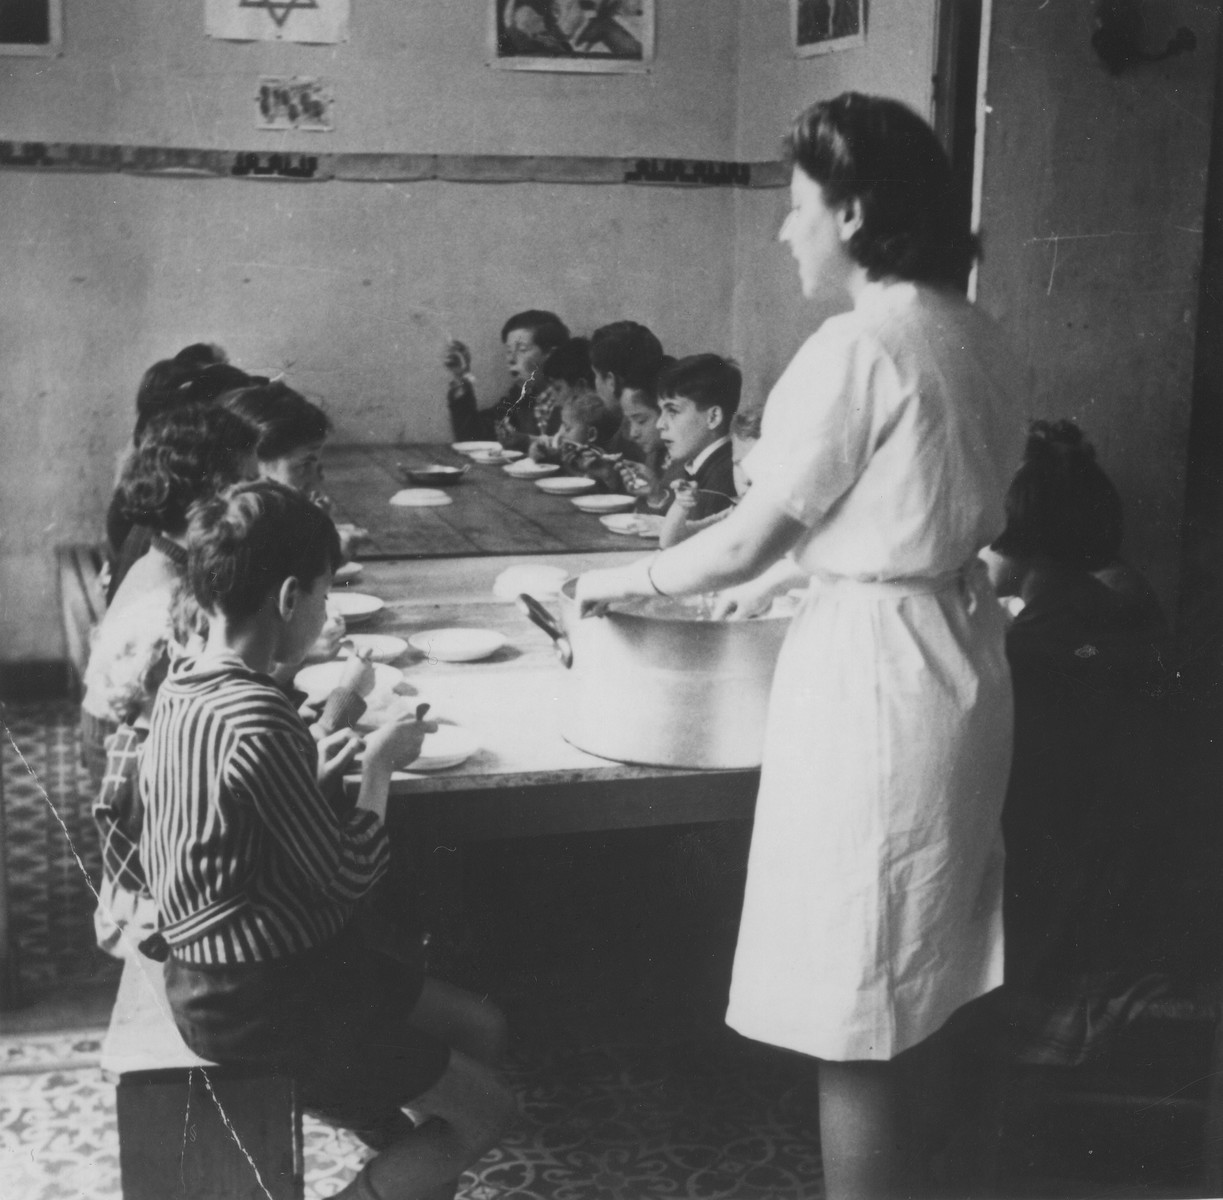 OSE relief worker Margot Stein serves soup to children at the Hotel Bompard internment camp.